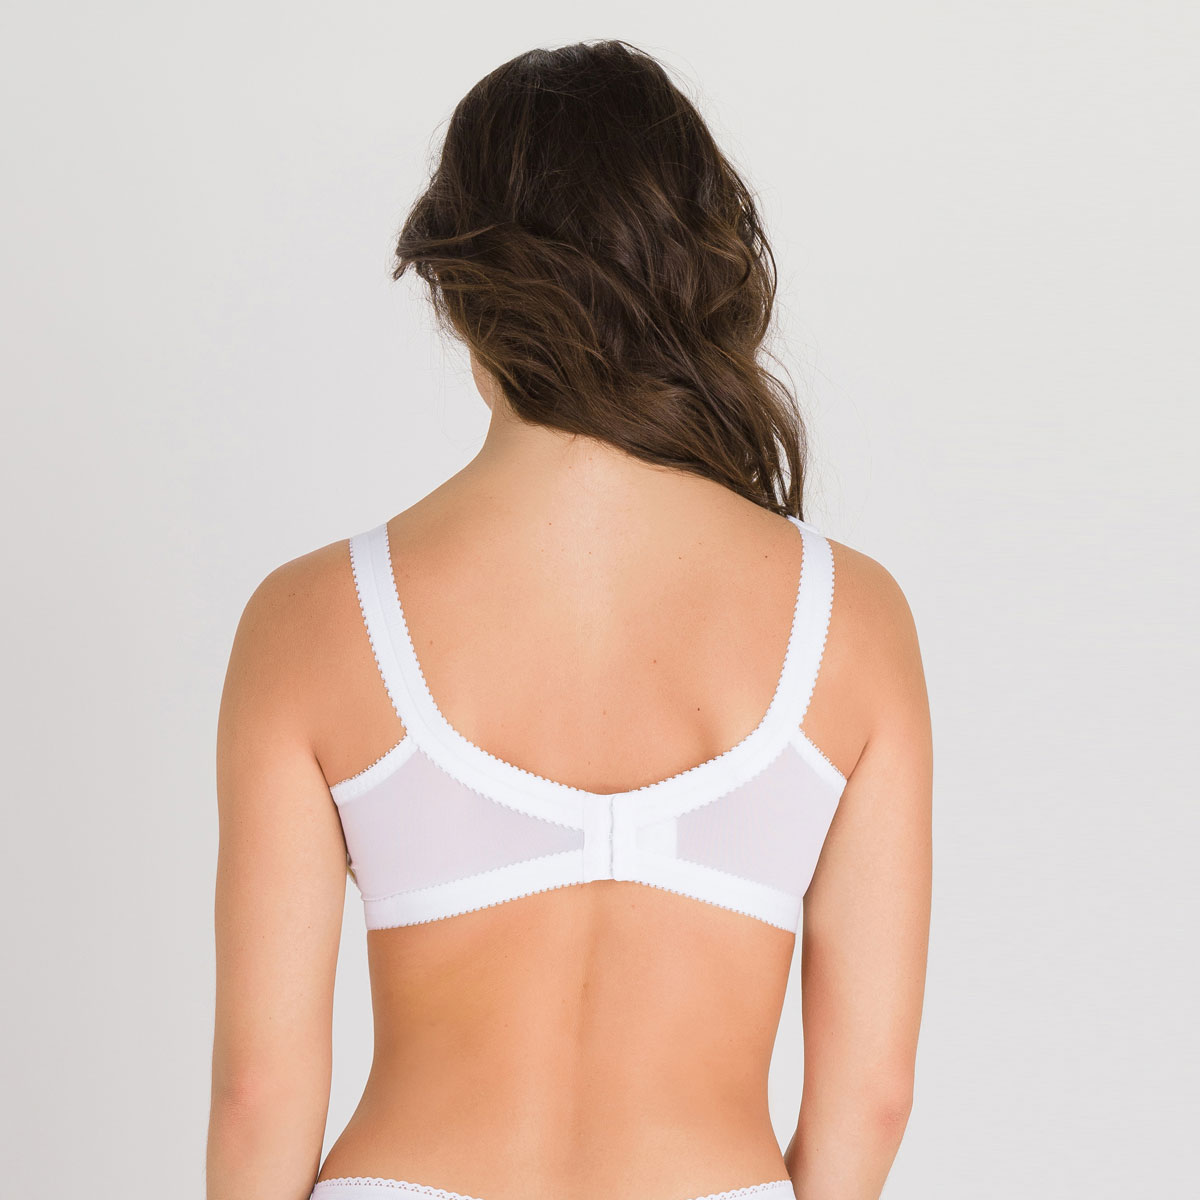 Non-wired Bra in White – Cross Your Heart 152-PLAYTEX